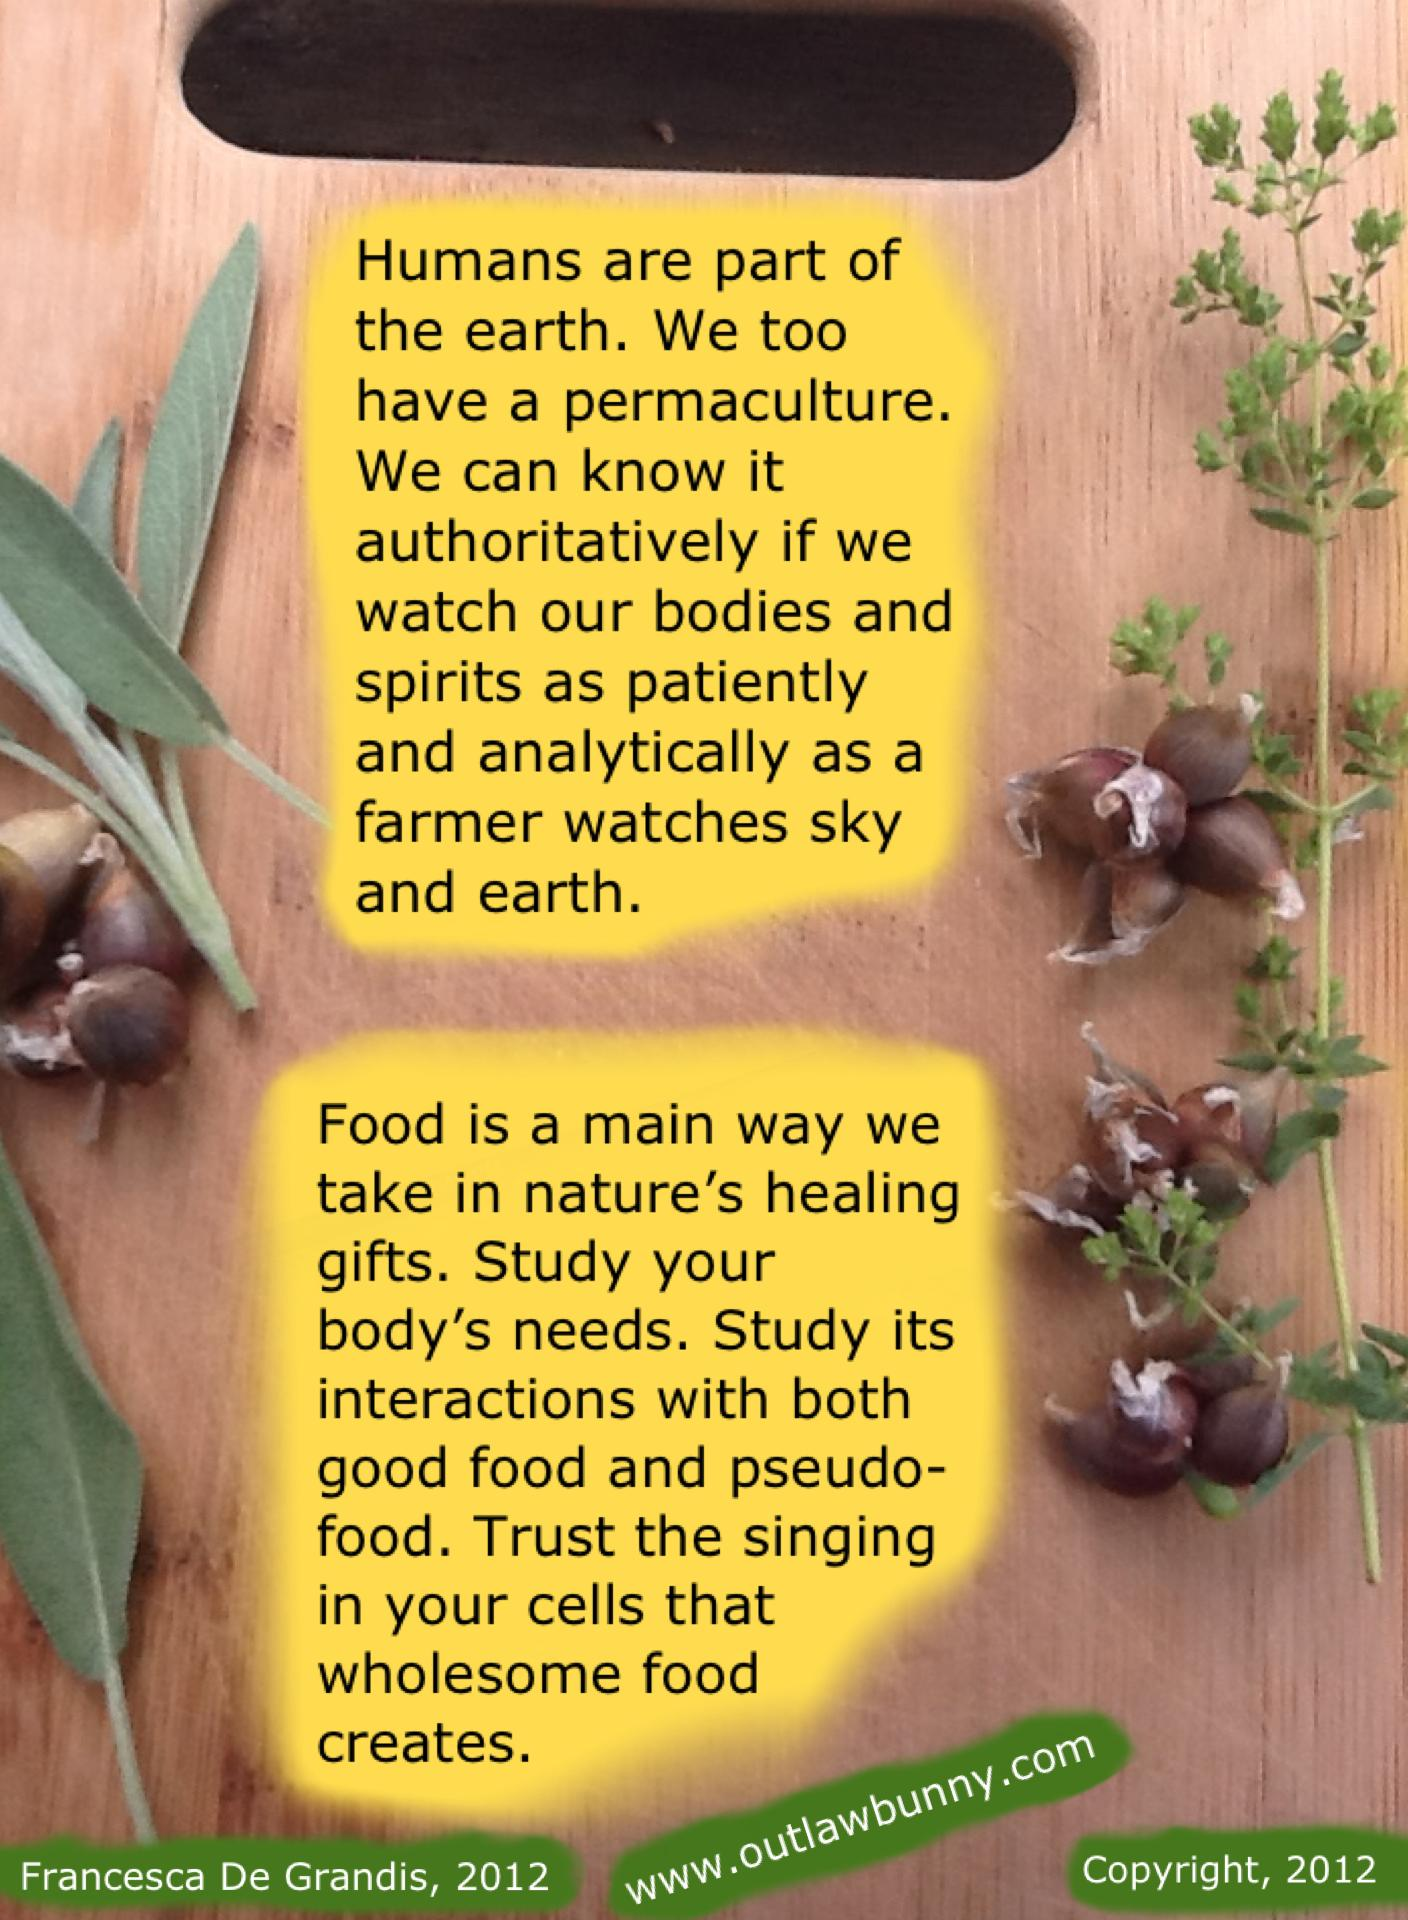 PersonPermaculture2012